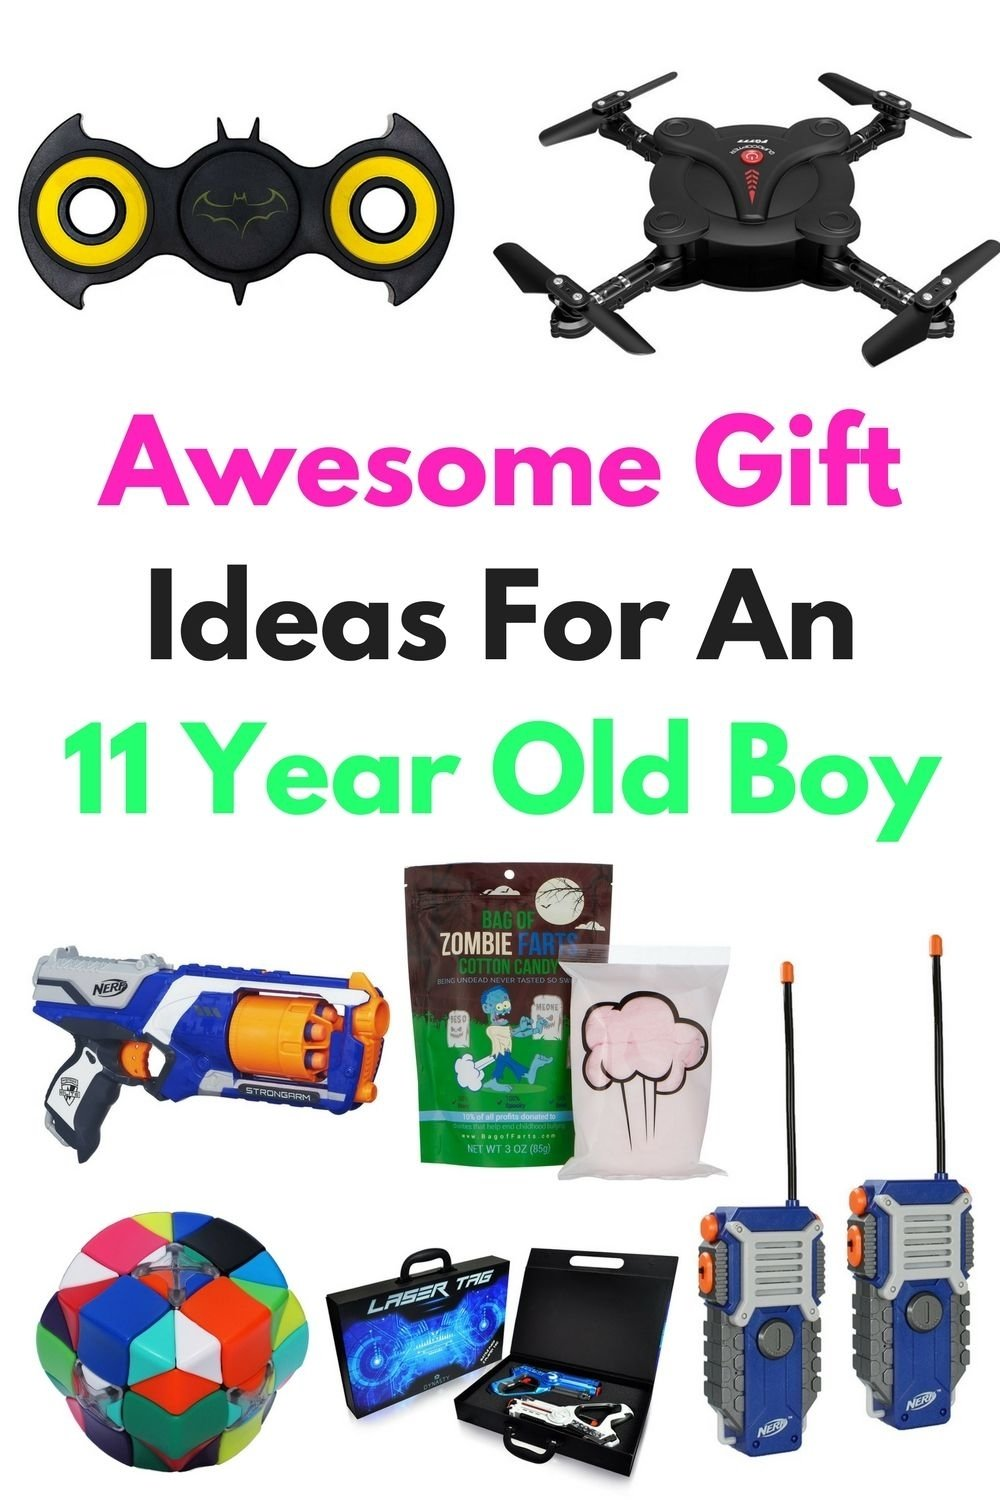 10 Lovable Christmas Ideas For 12 Year Old Boys awesome gift ideas for an 11 year old boy awesome gifts easter 7 2020